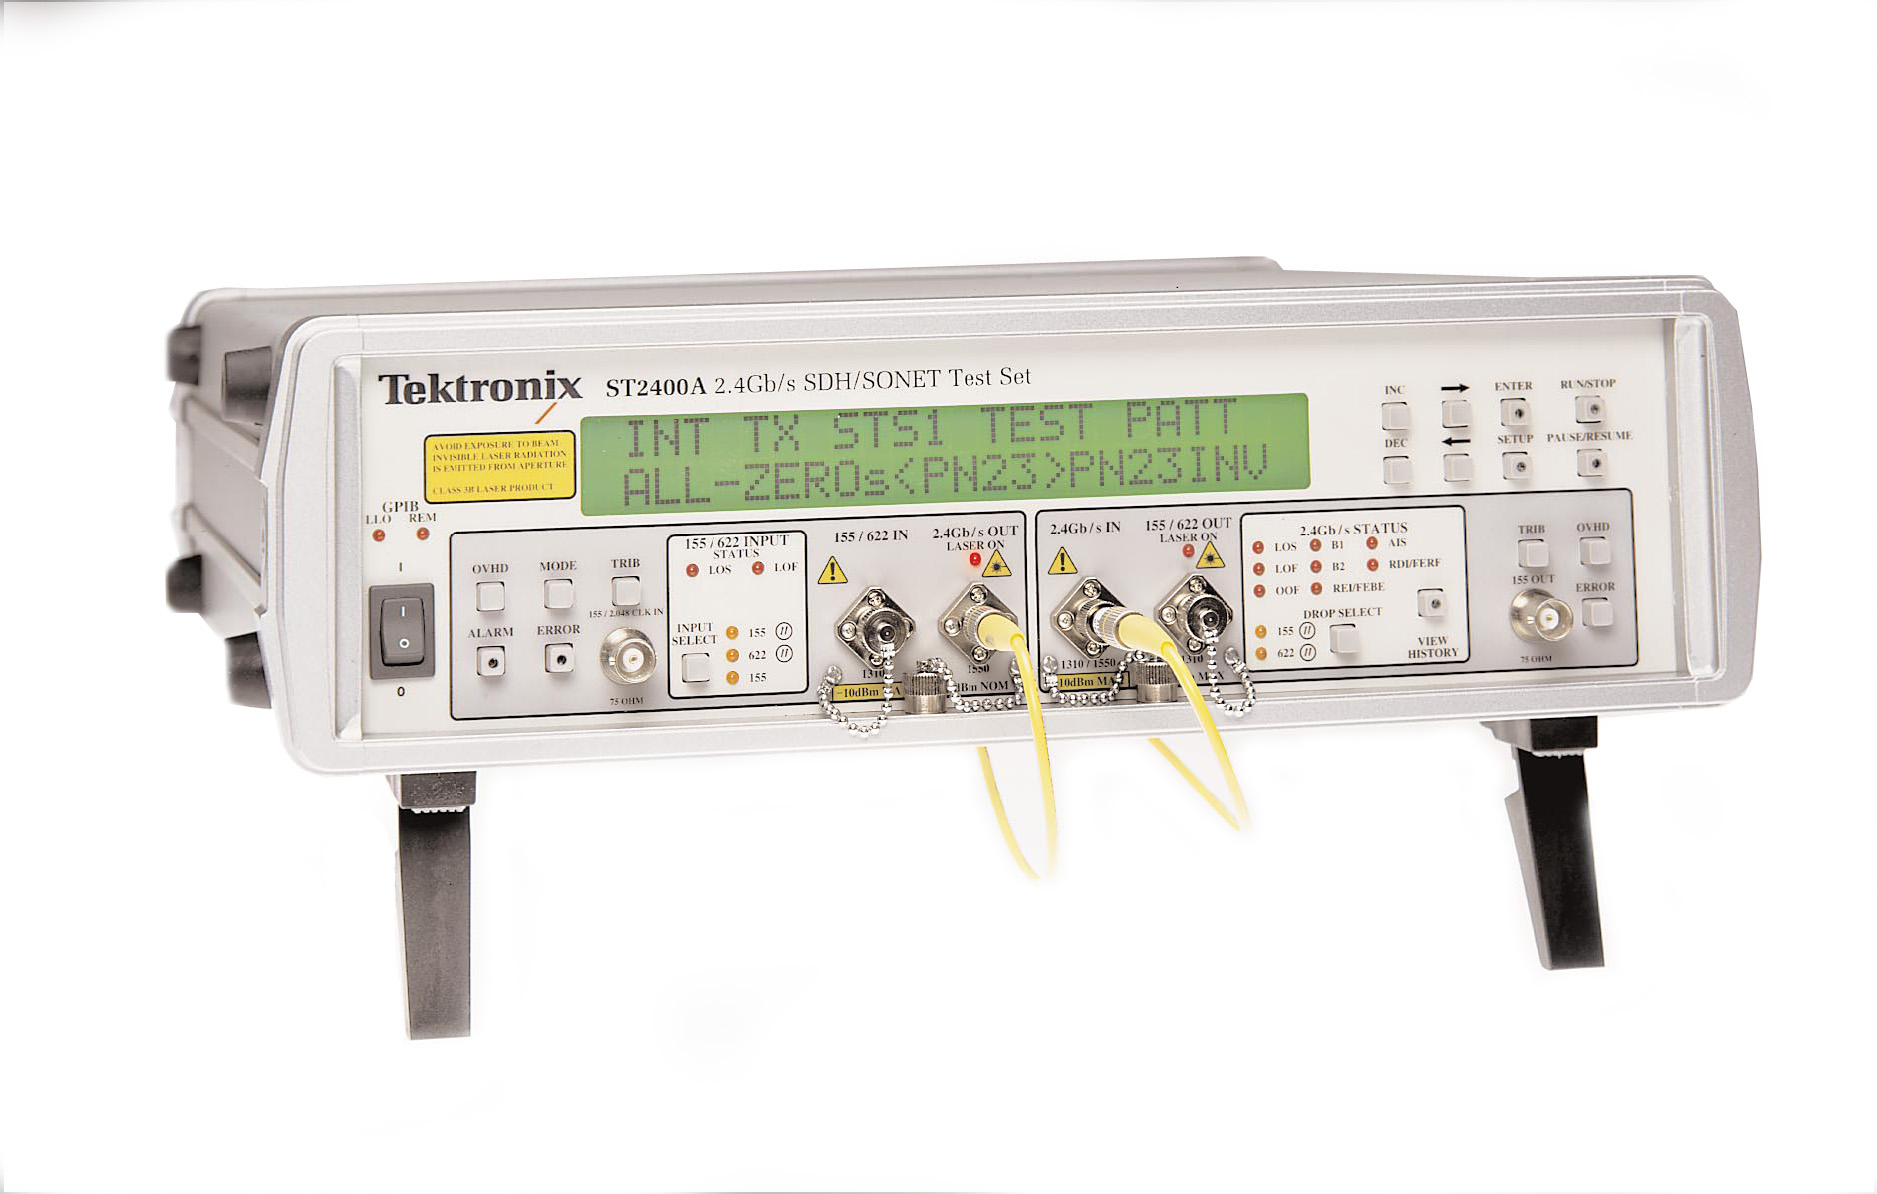 Tektronix ST2400R for sale